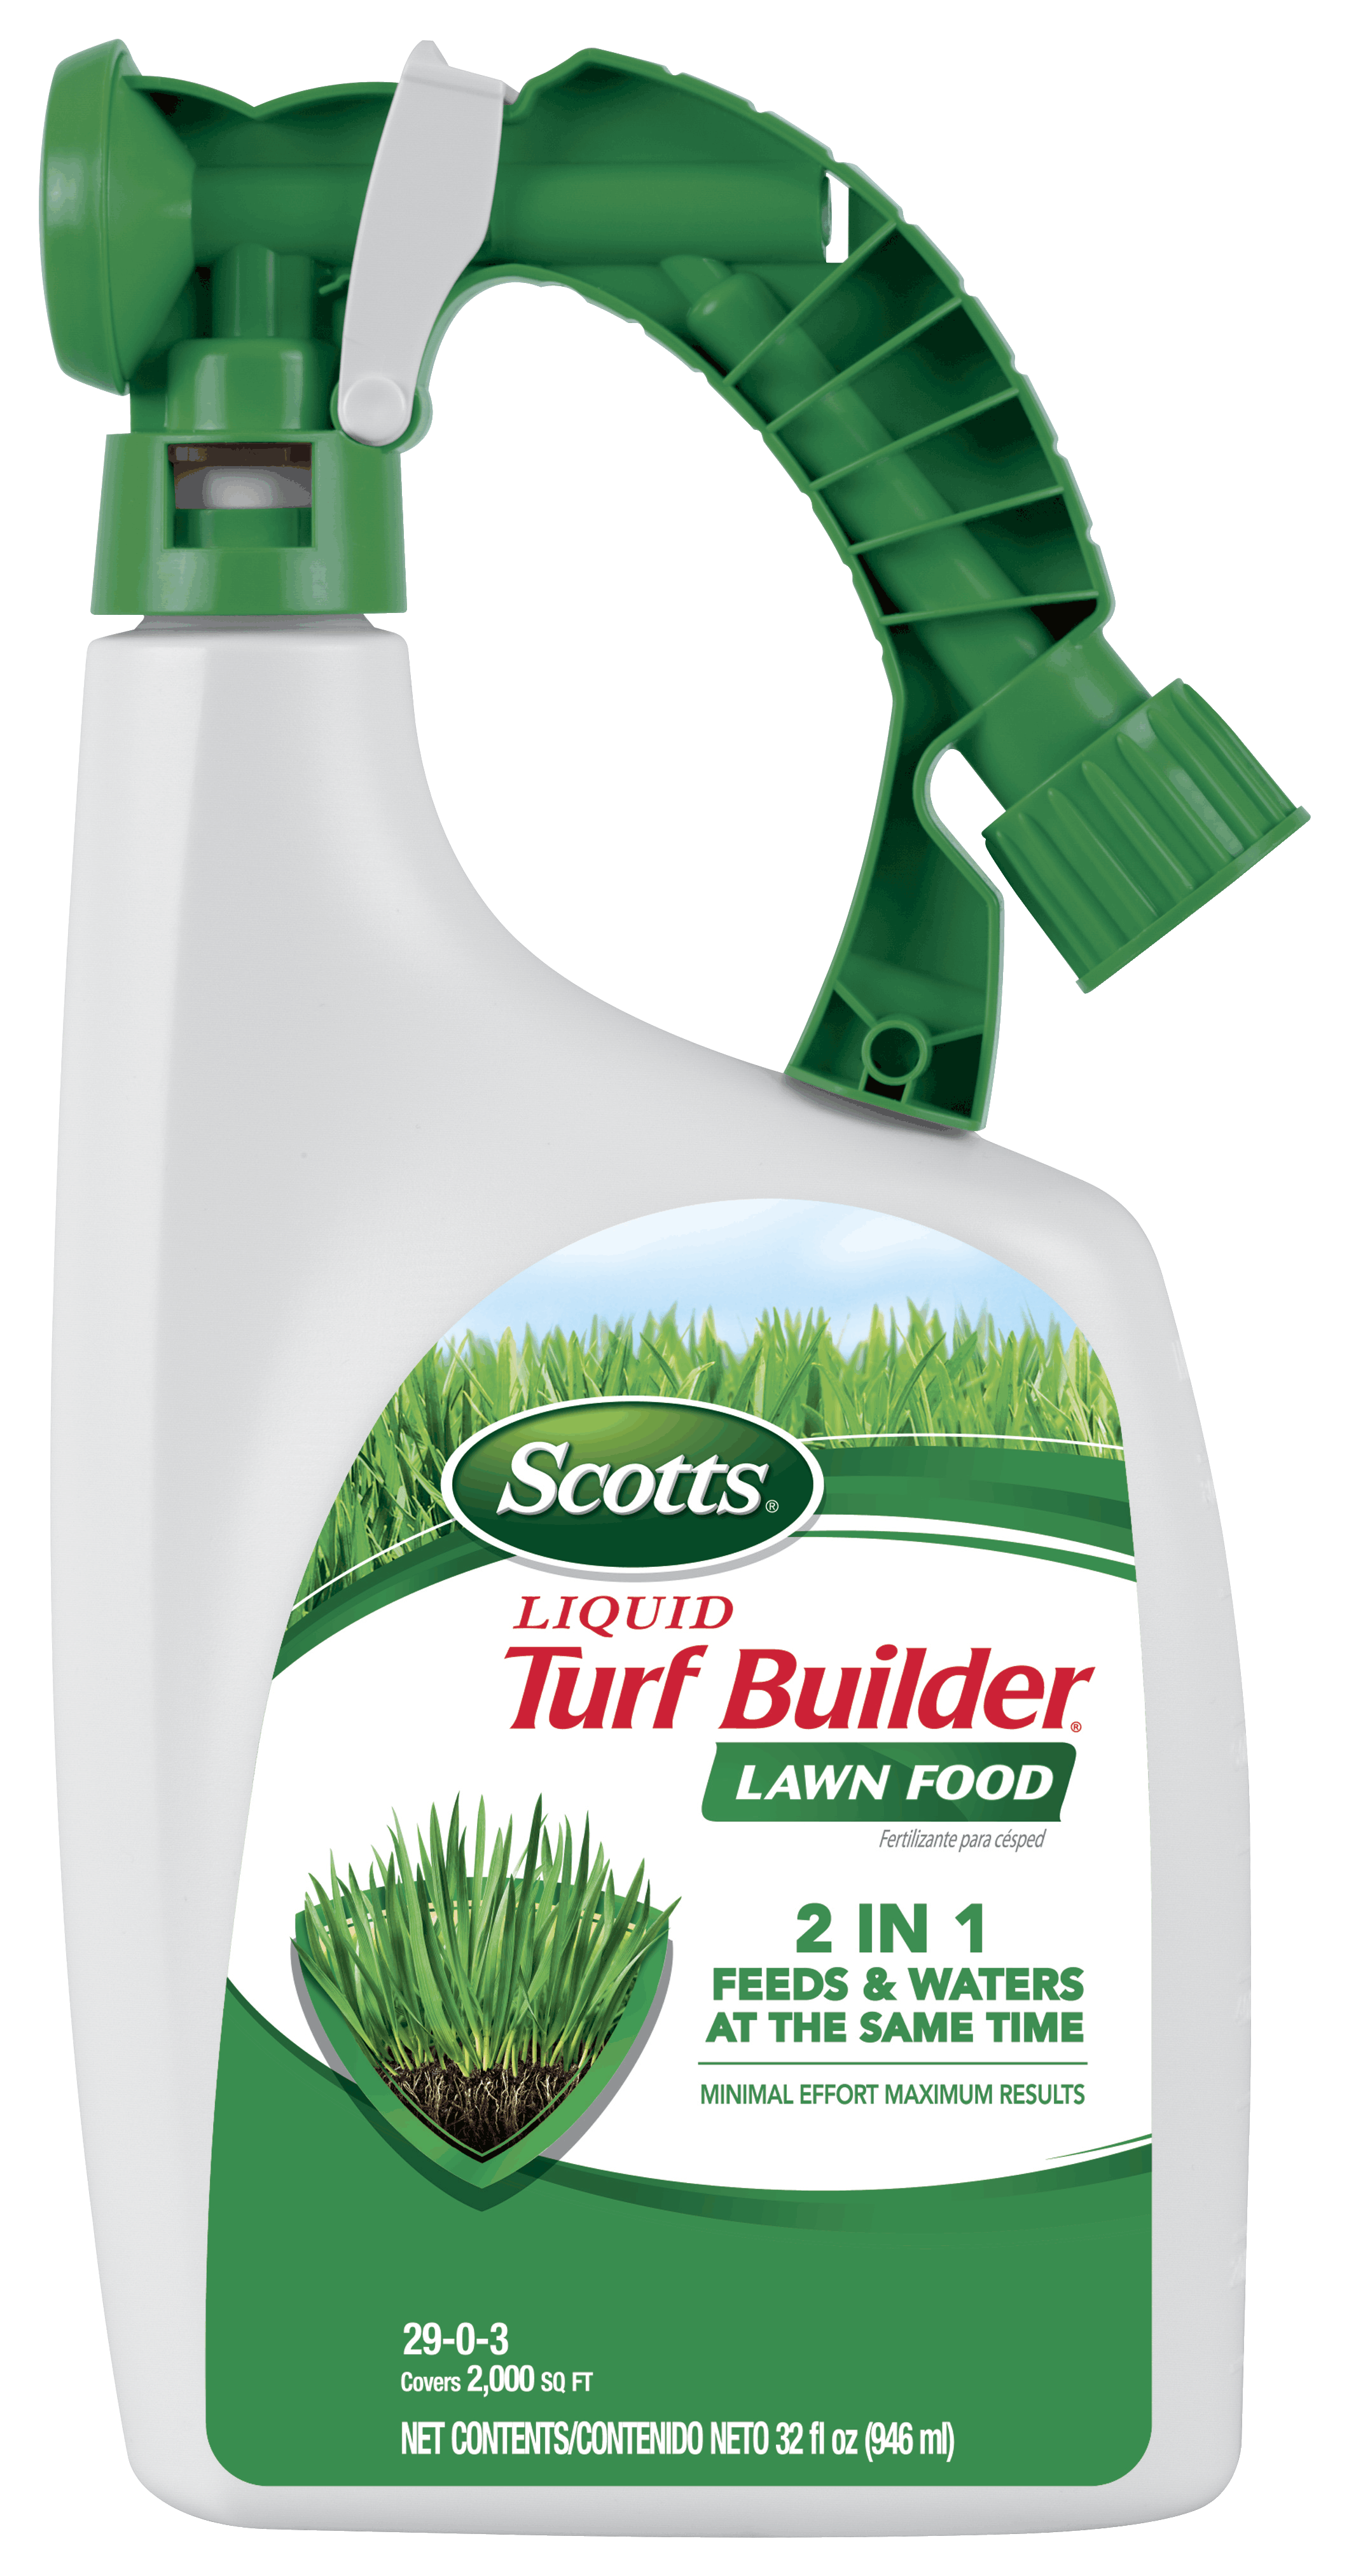 Scotts Liquid Turf Builder Lawn Food